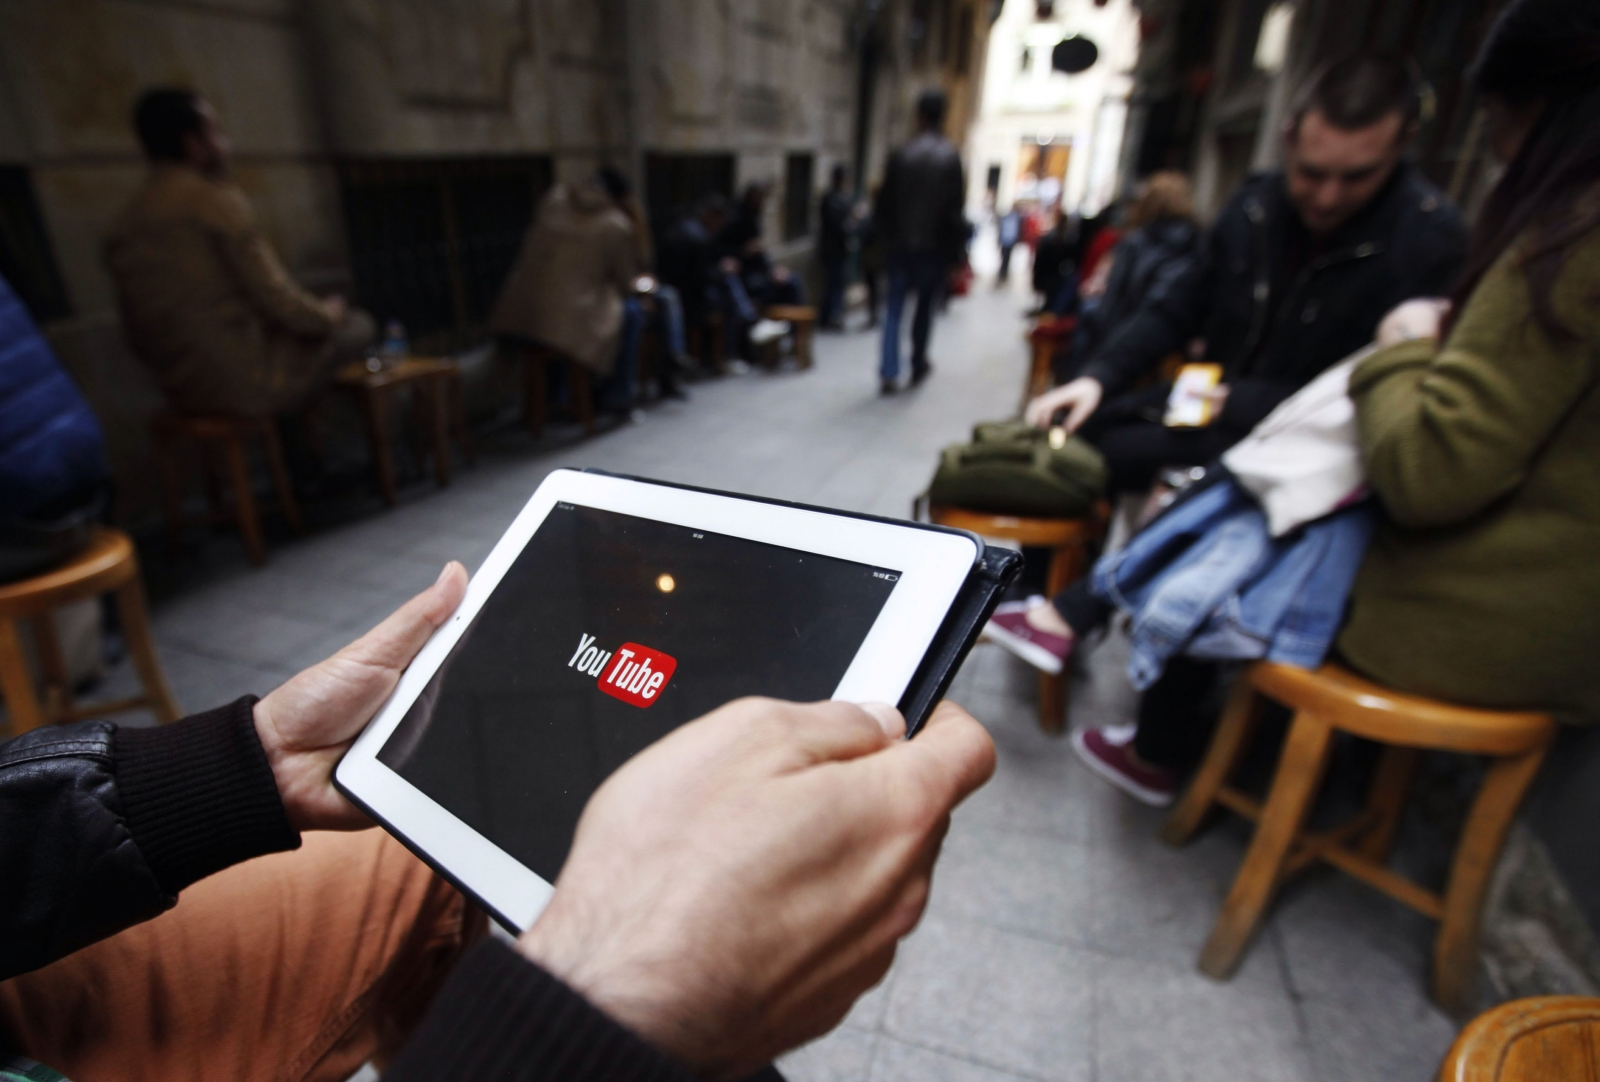 YouTube being viewed on a tablet